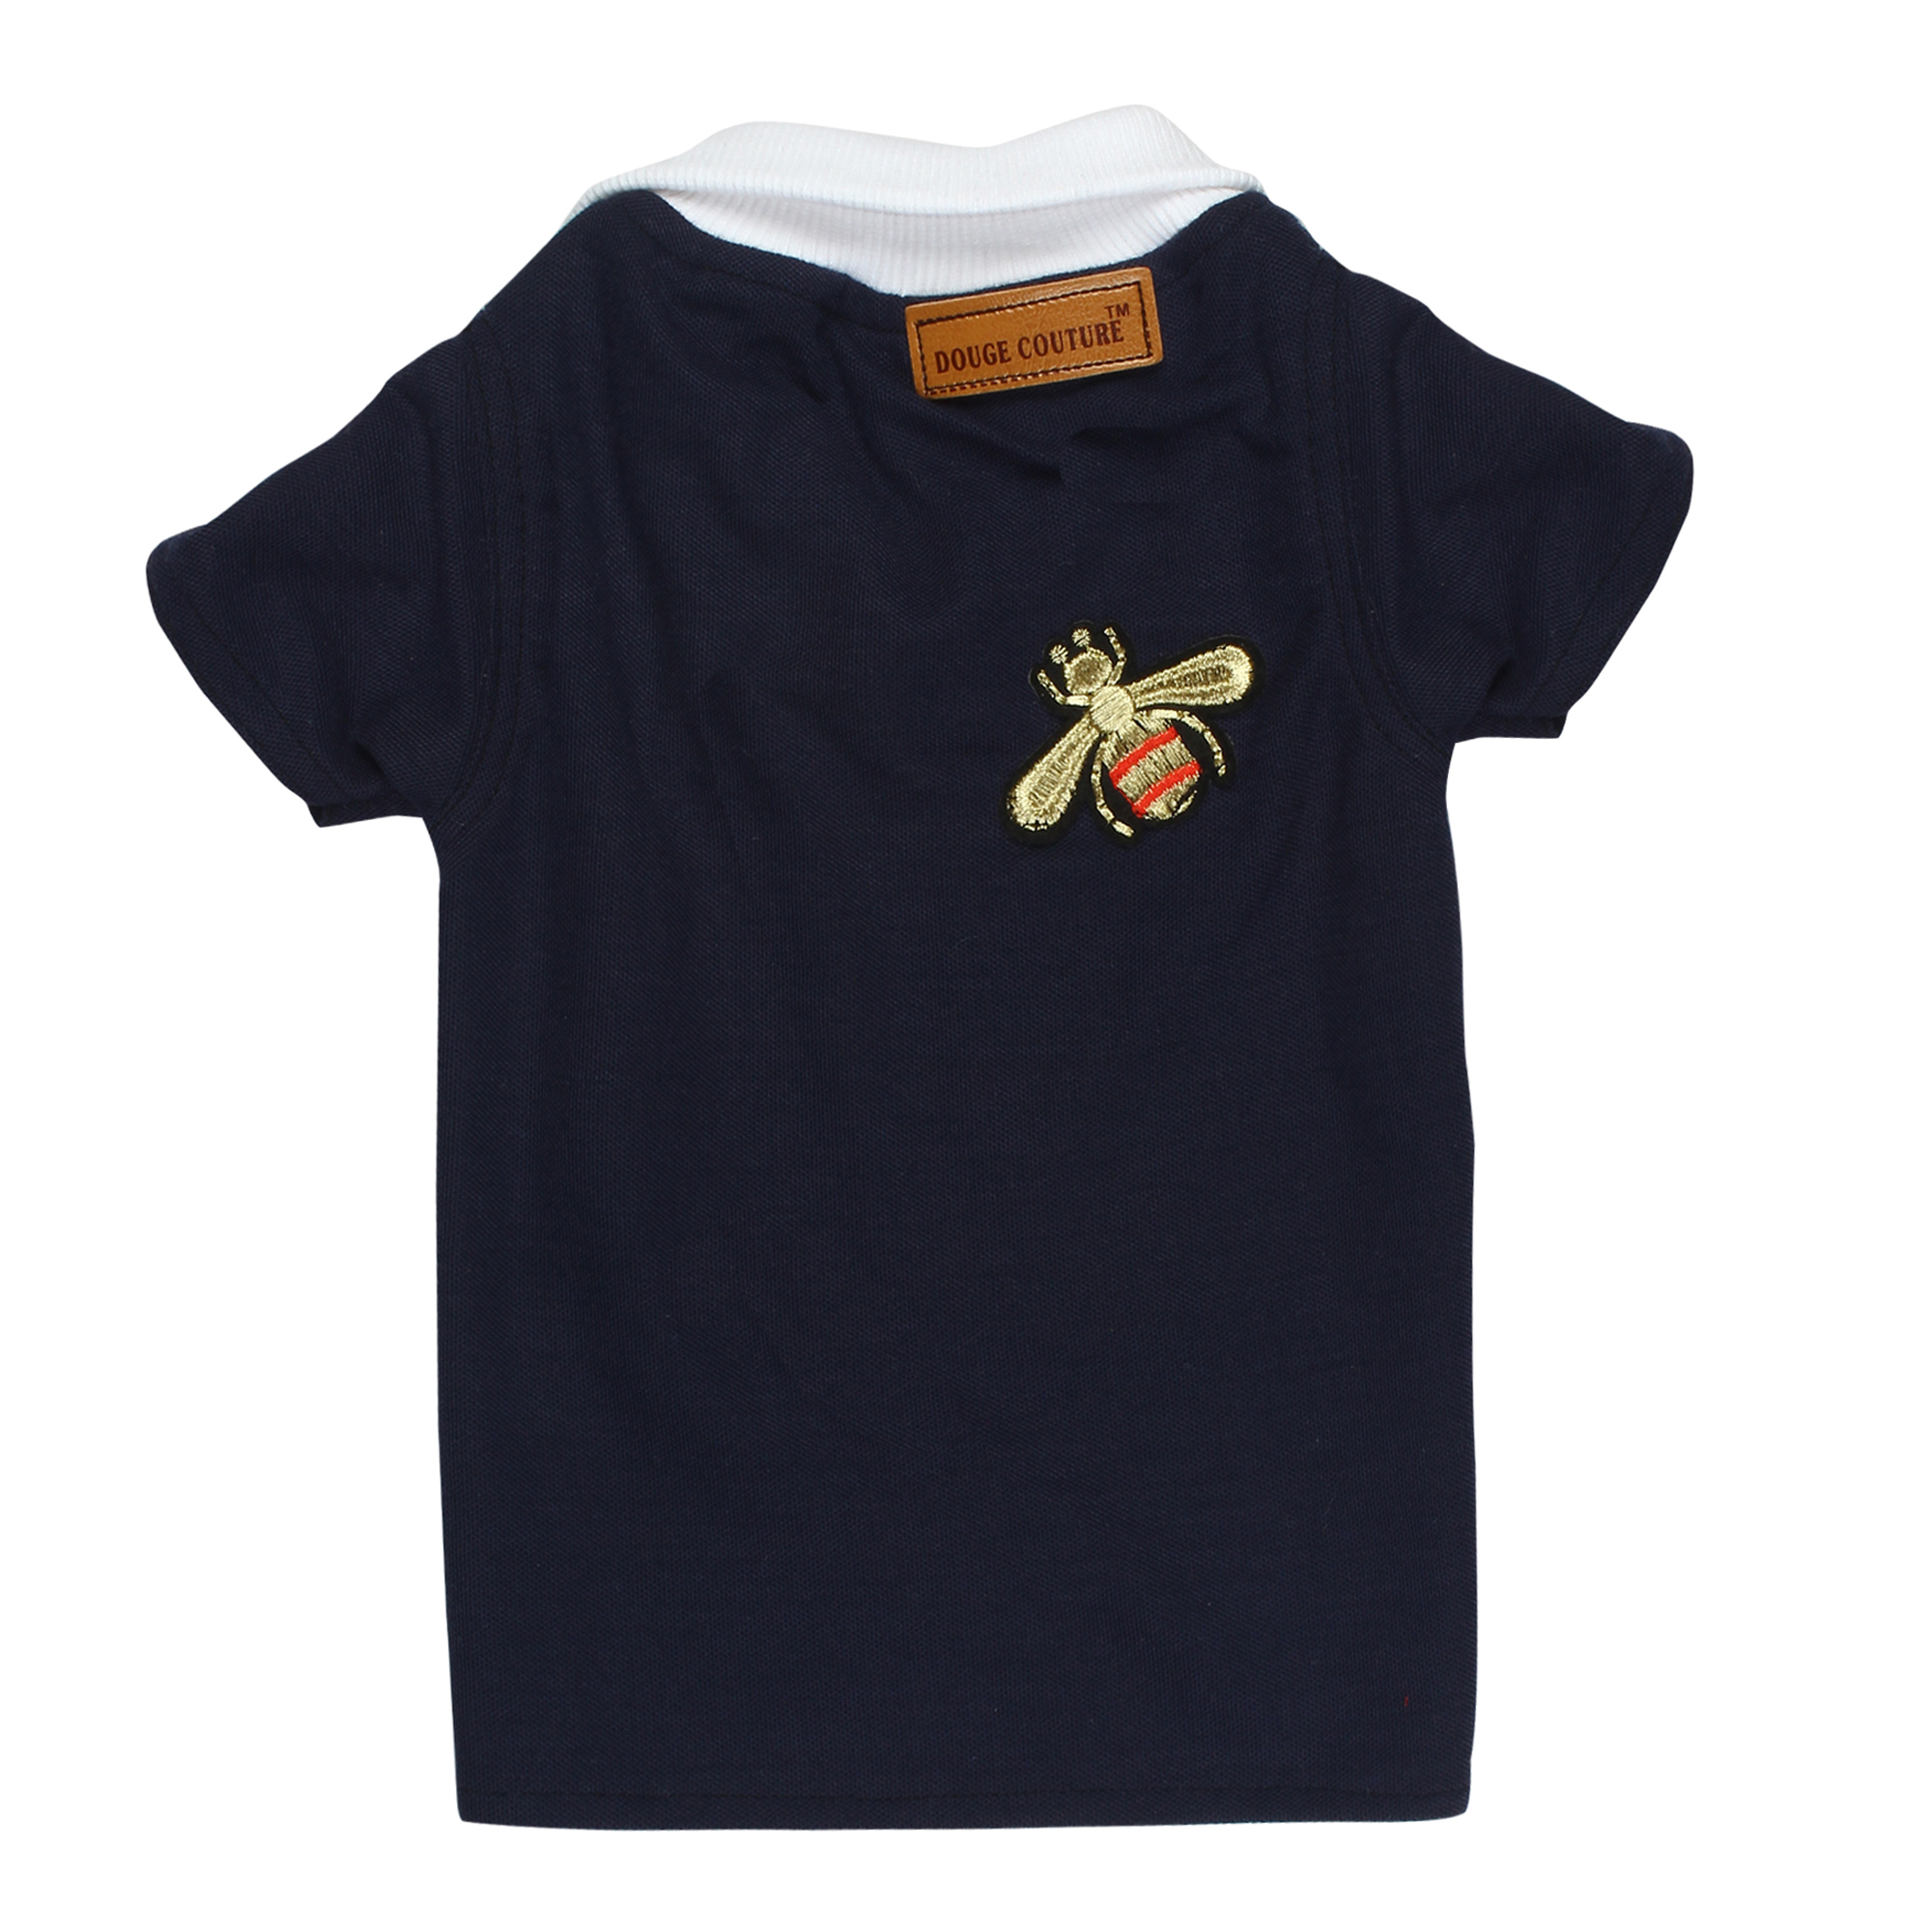 douge couture navy blue color polot-shirt with patch